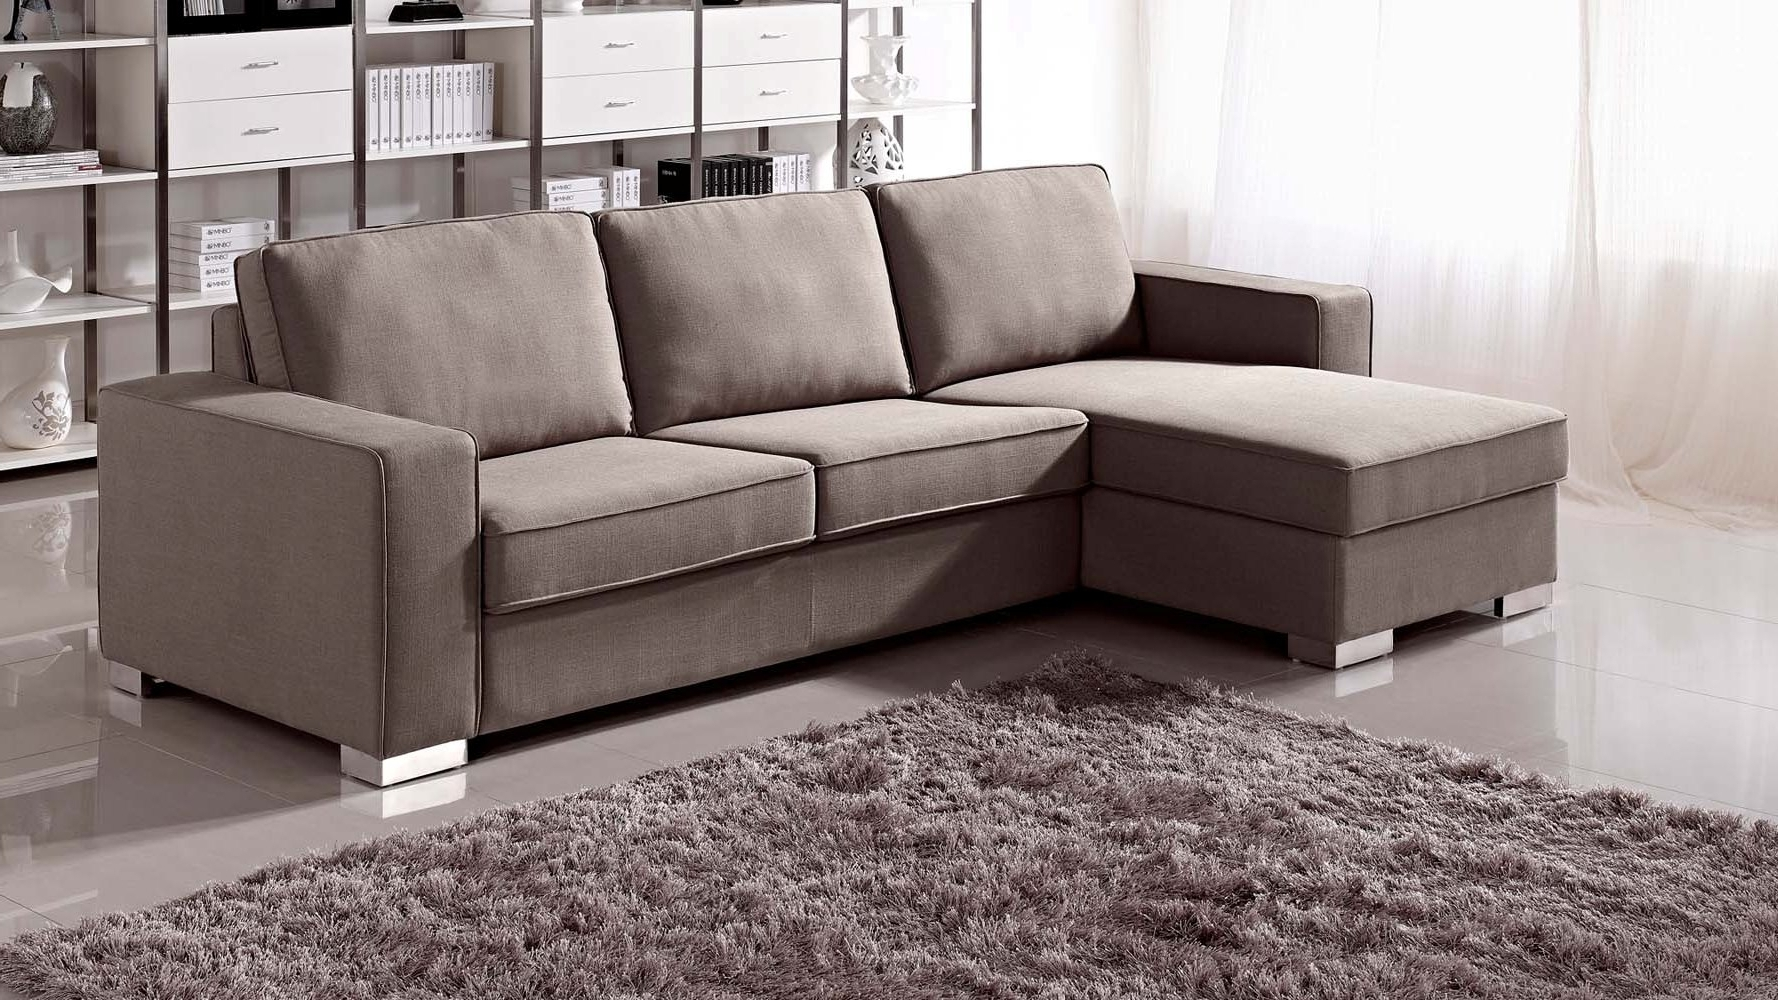 Innovative Sofa Sleeper Sectionals Beautiful Interior Design Style With Regard To Most Current Sectional Sofas With Queen Size Sleeper (View 14 of 20)